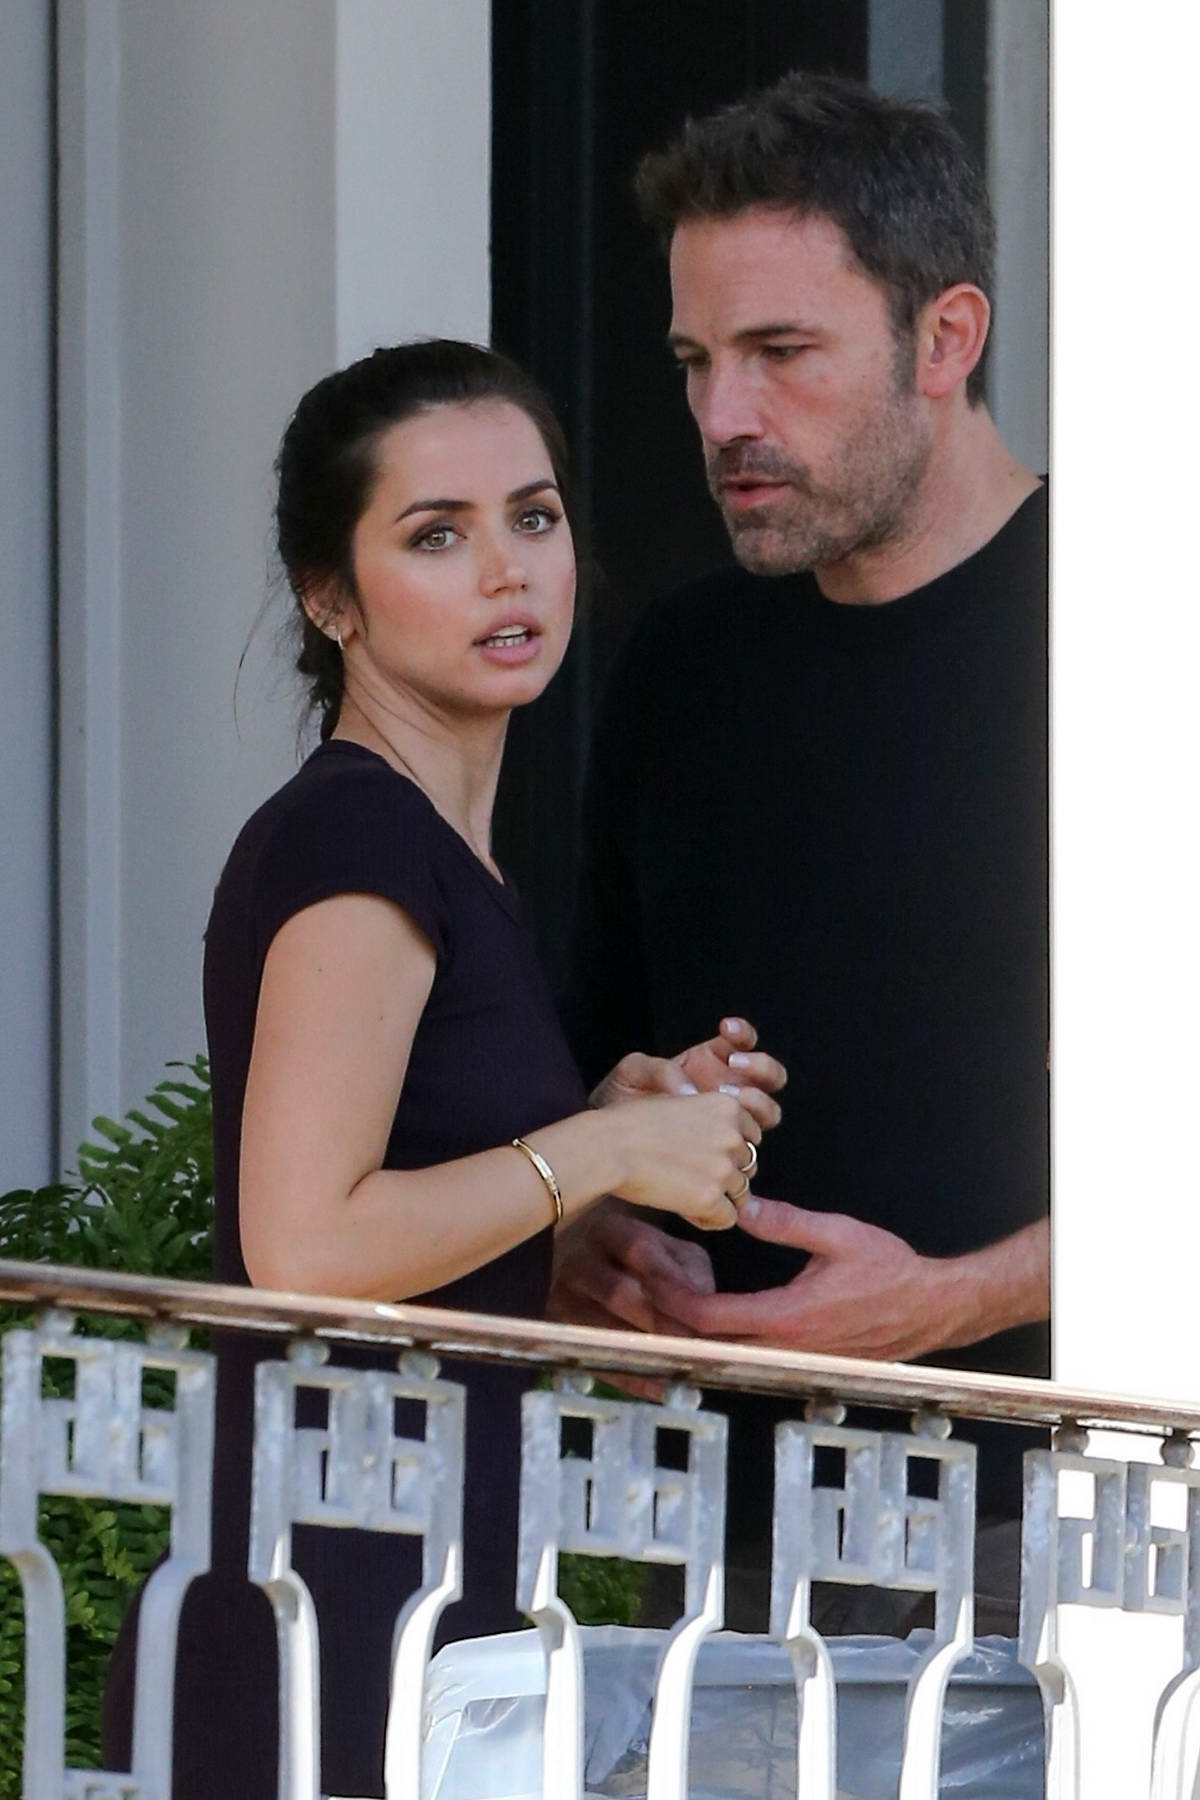 Ana de Armas and Ben Affleck spotted on a balcony while taking a break from filming in New Orleans, Louisiana